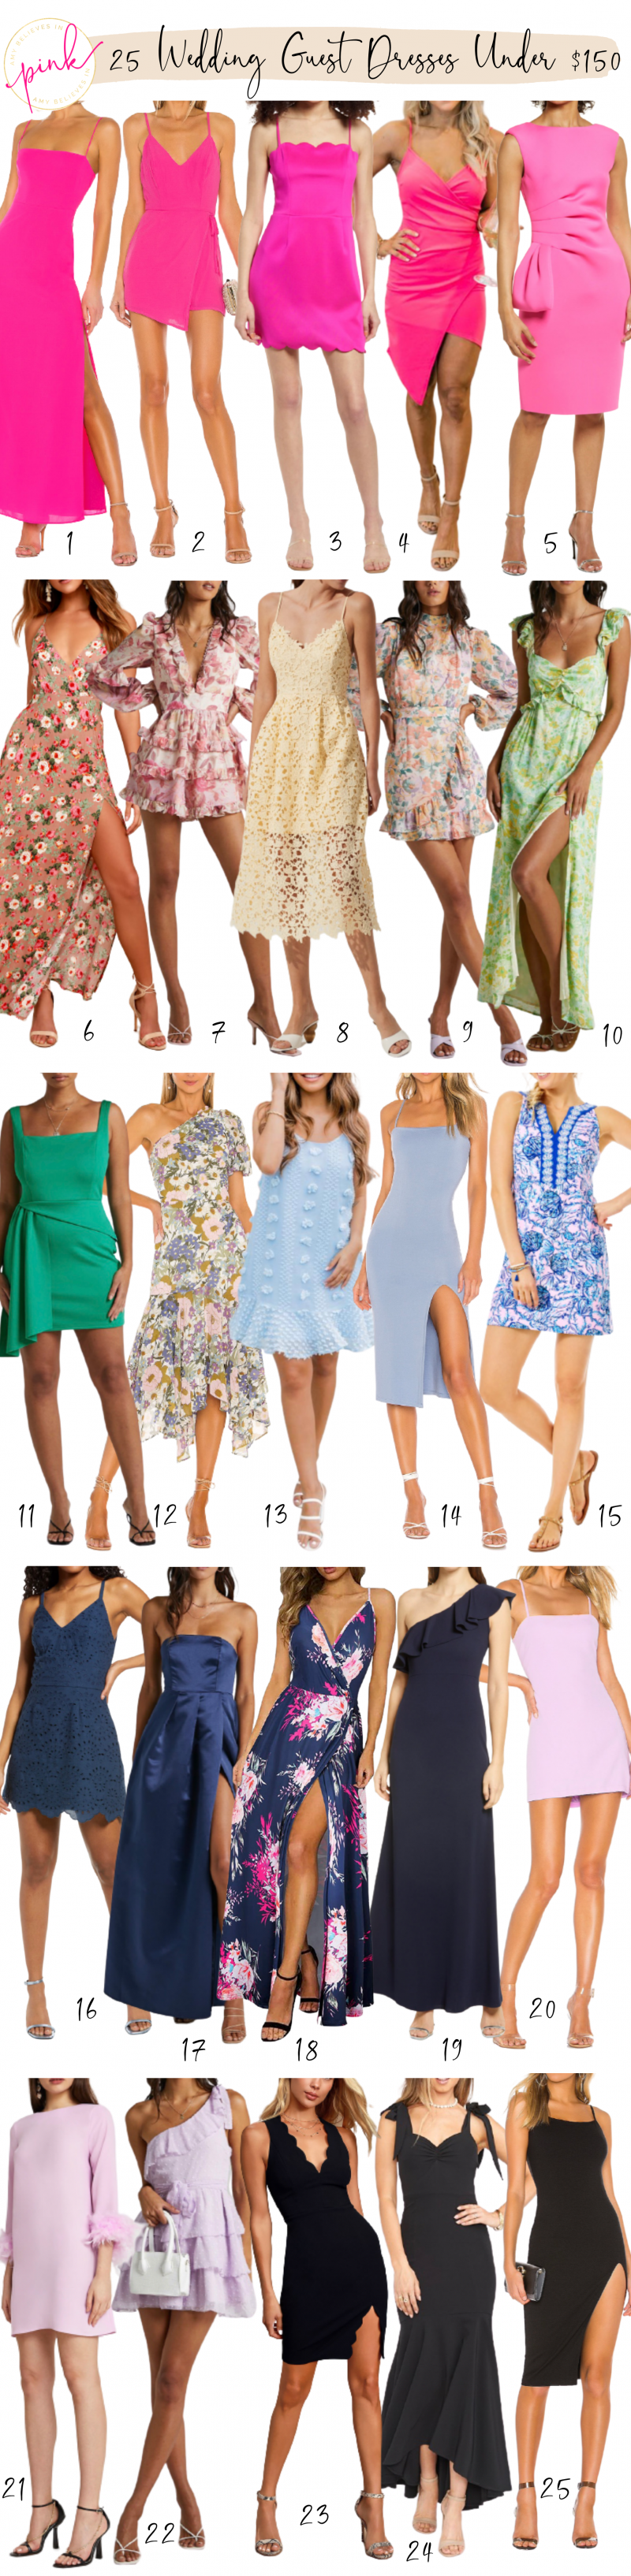 25 Wedding Guest Dresses Under $150